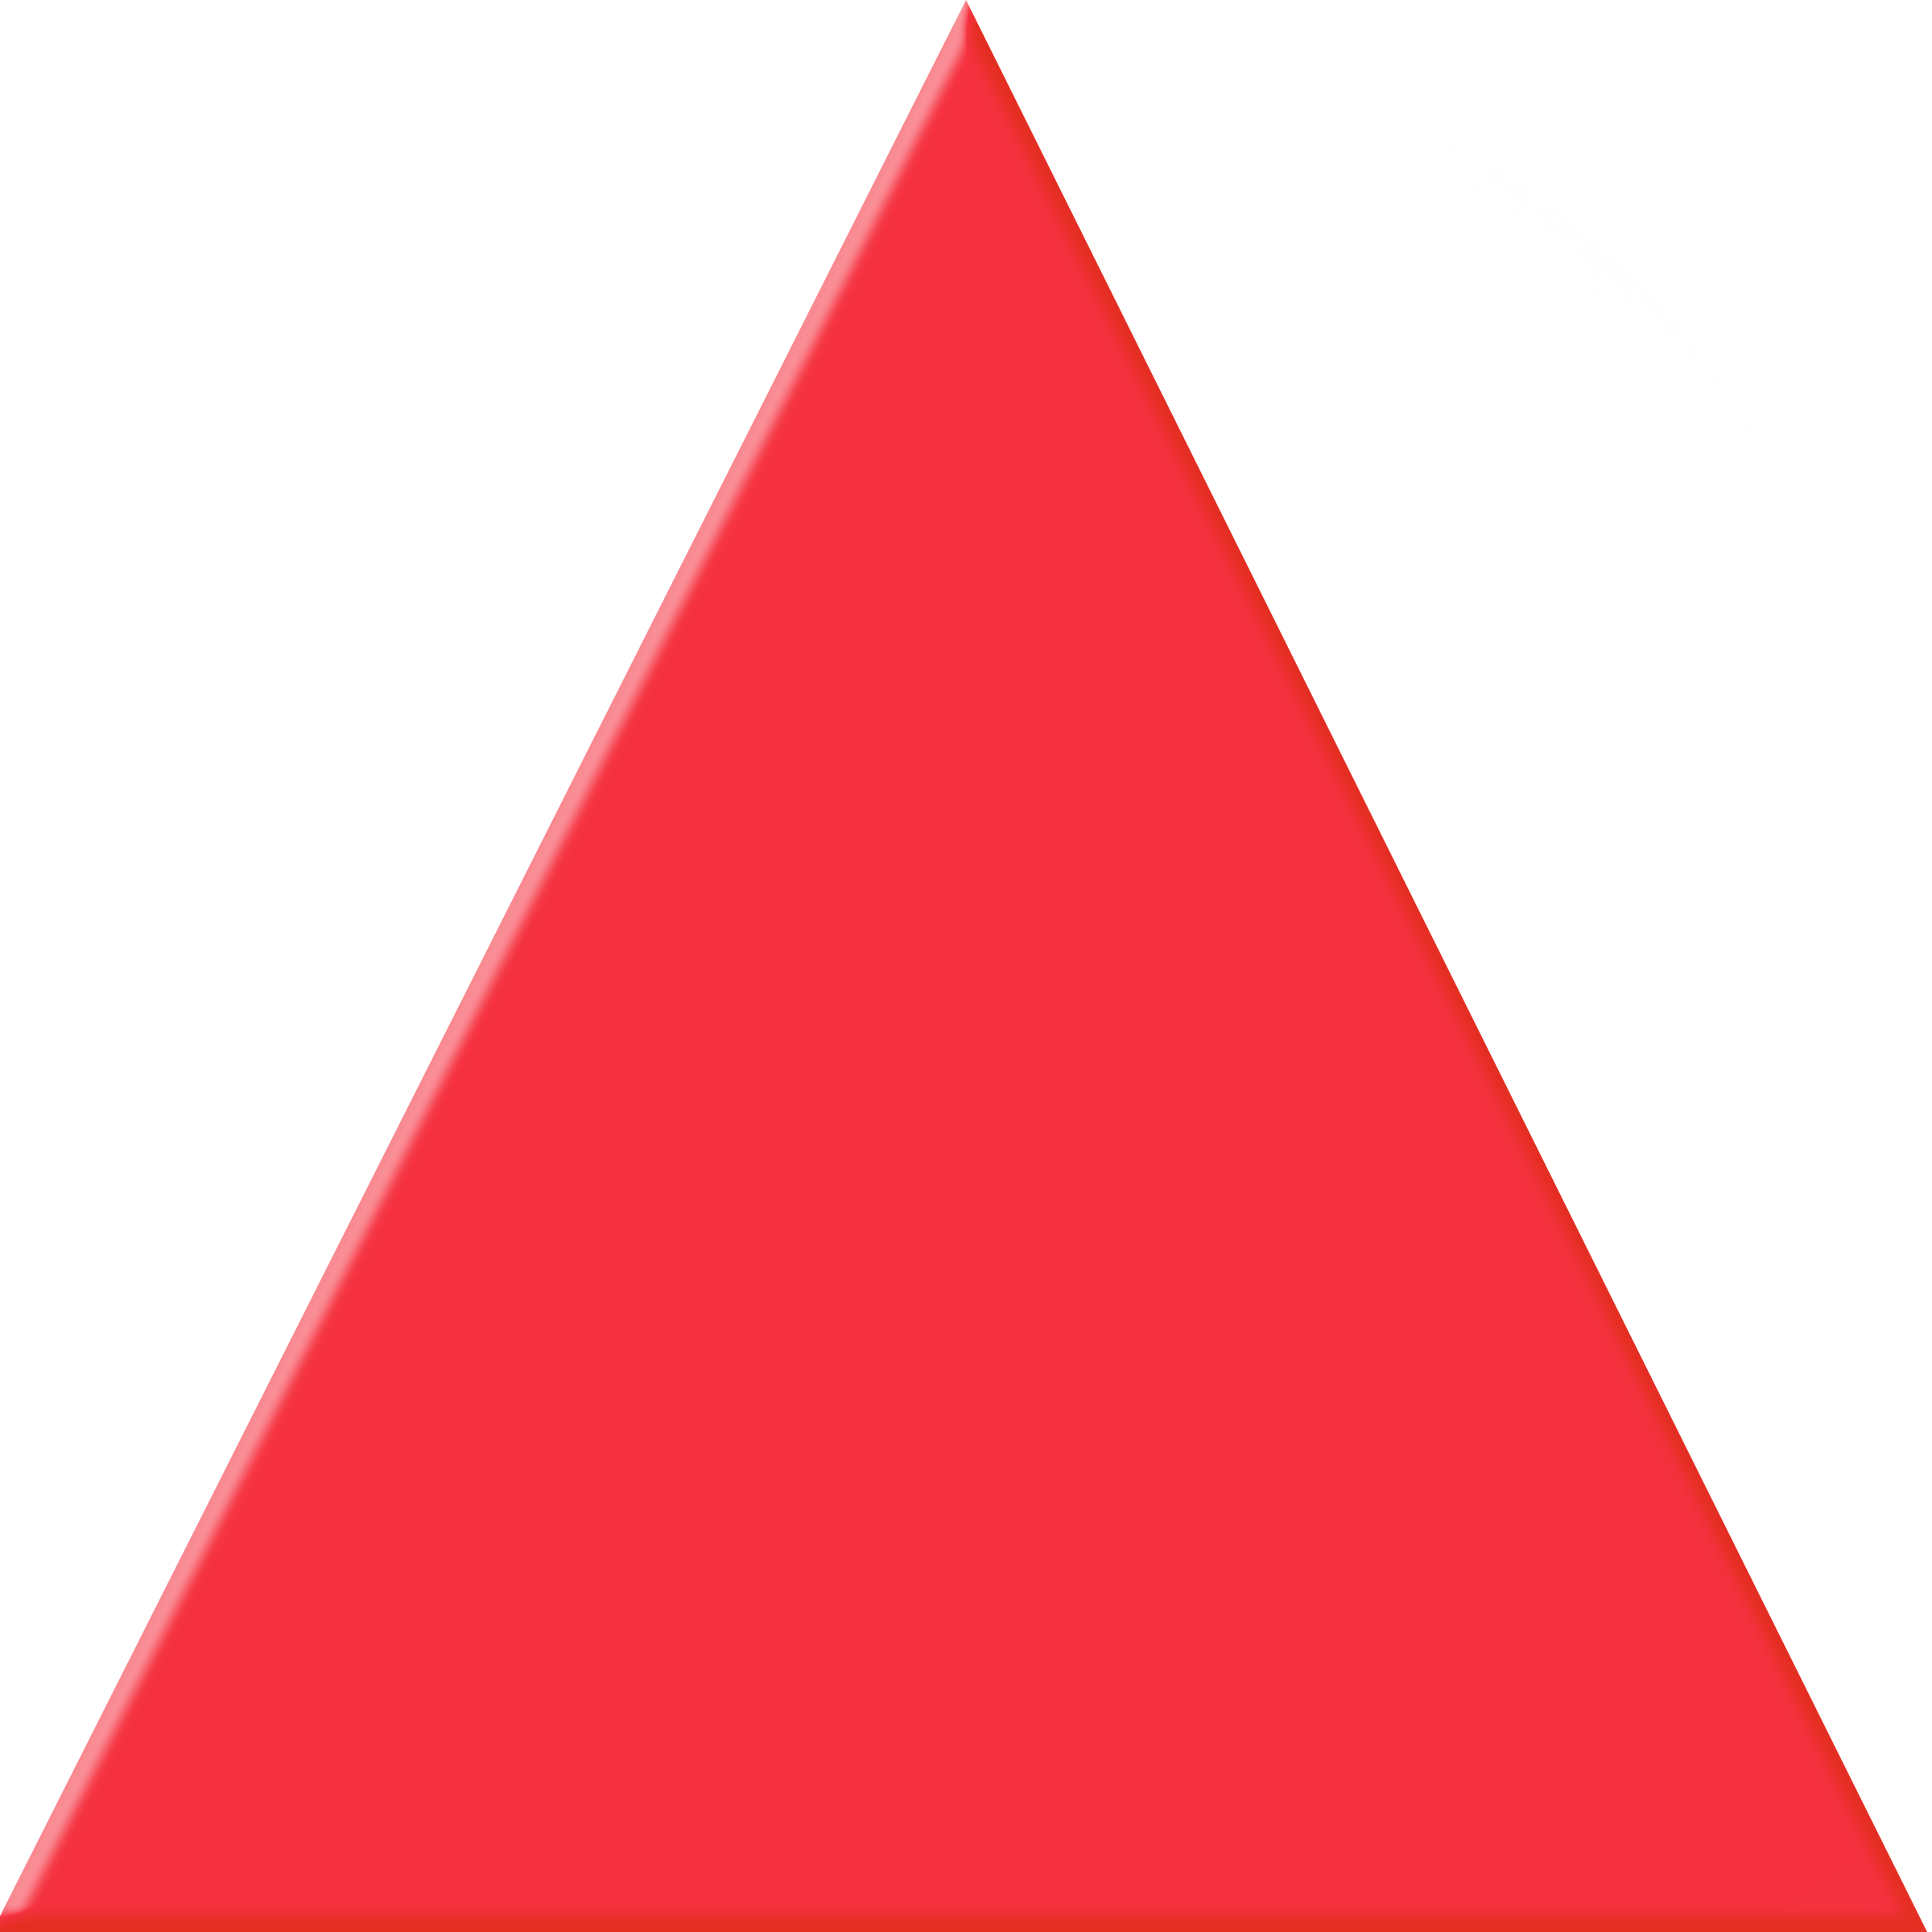 Triangle PNG - 22952